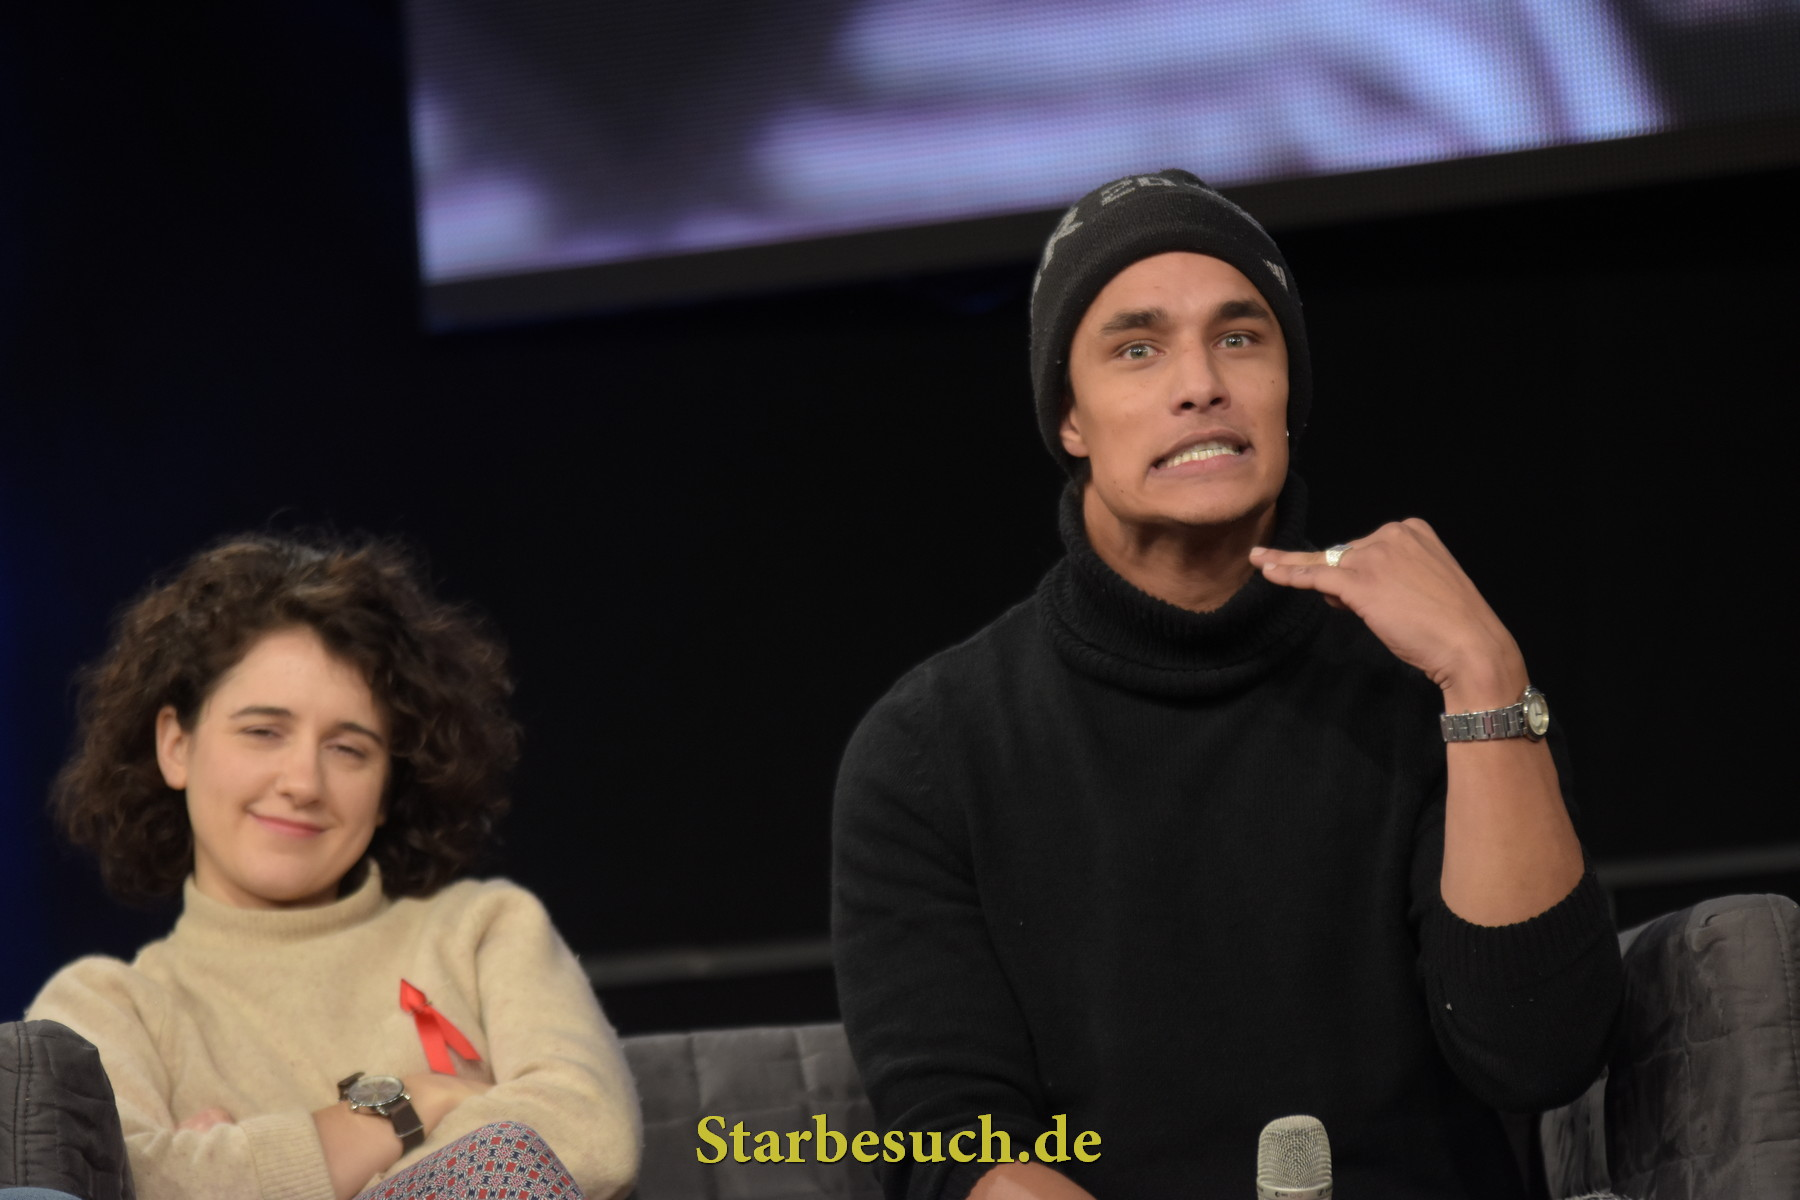 Dortmund, Germany - December 9th 2017: British Actor Staz Nair (* 1991, Qhono in the HBO fantasy series Game of Thrones) signaling: Don't ask about Season 8! At Game of Thrones panel, German Comic Con Dortmund